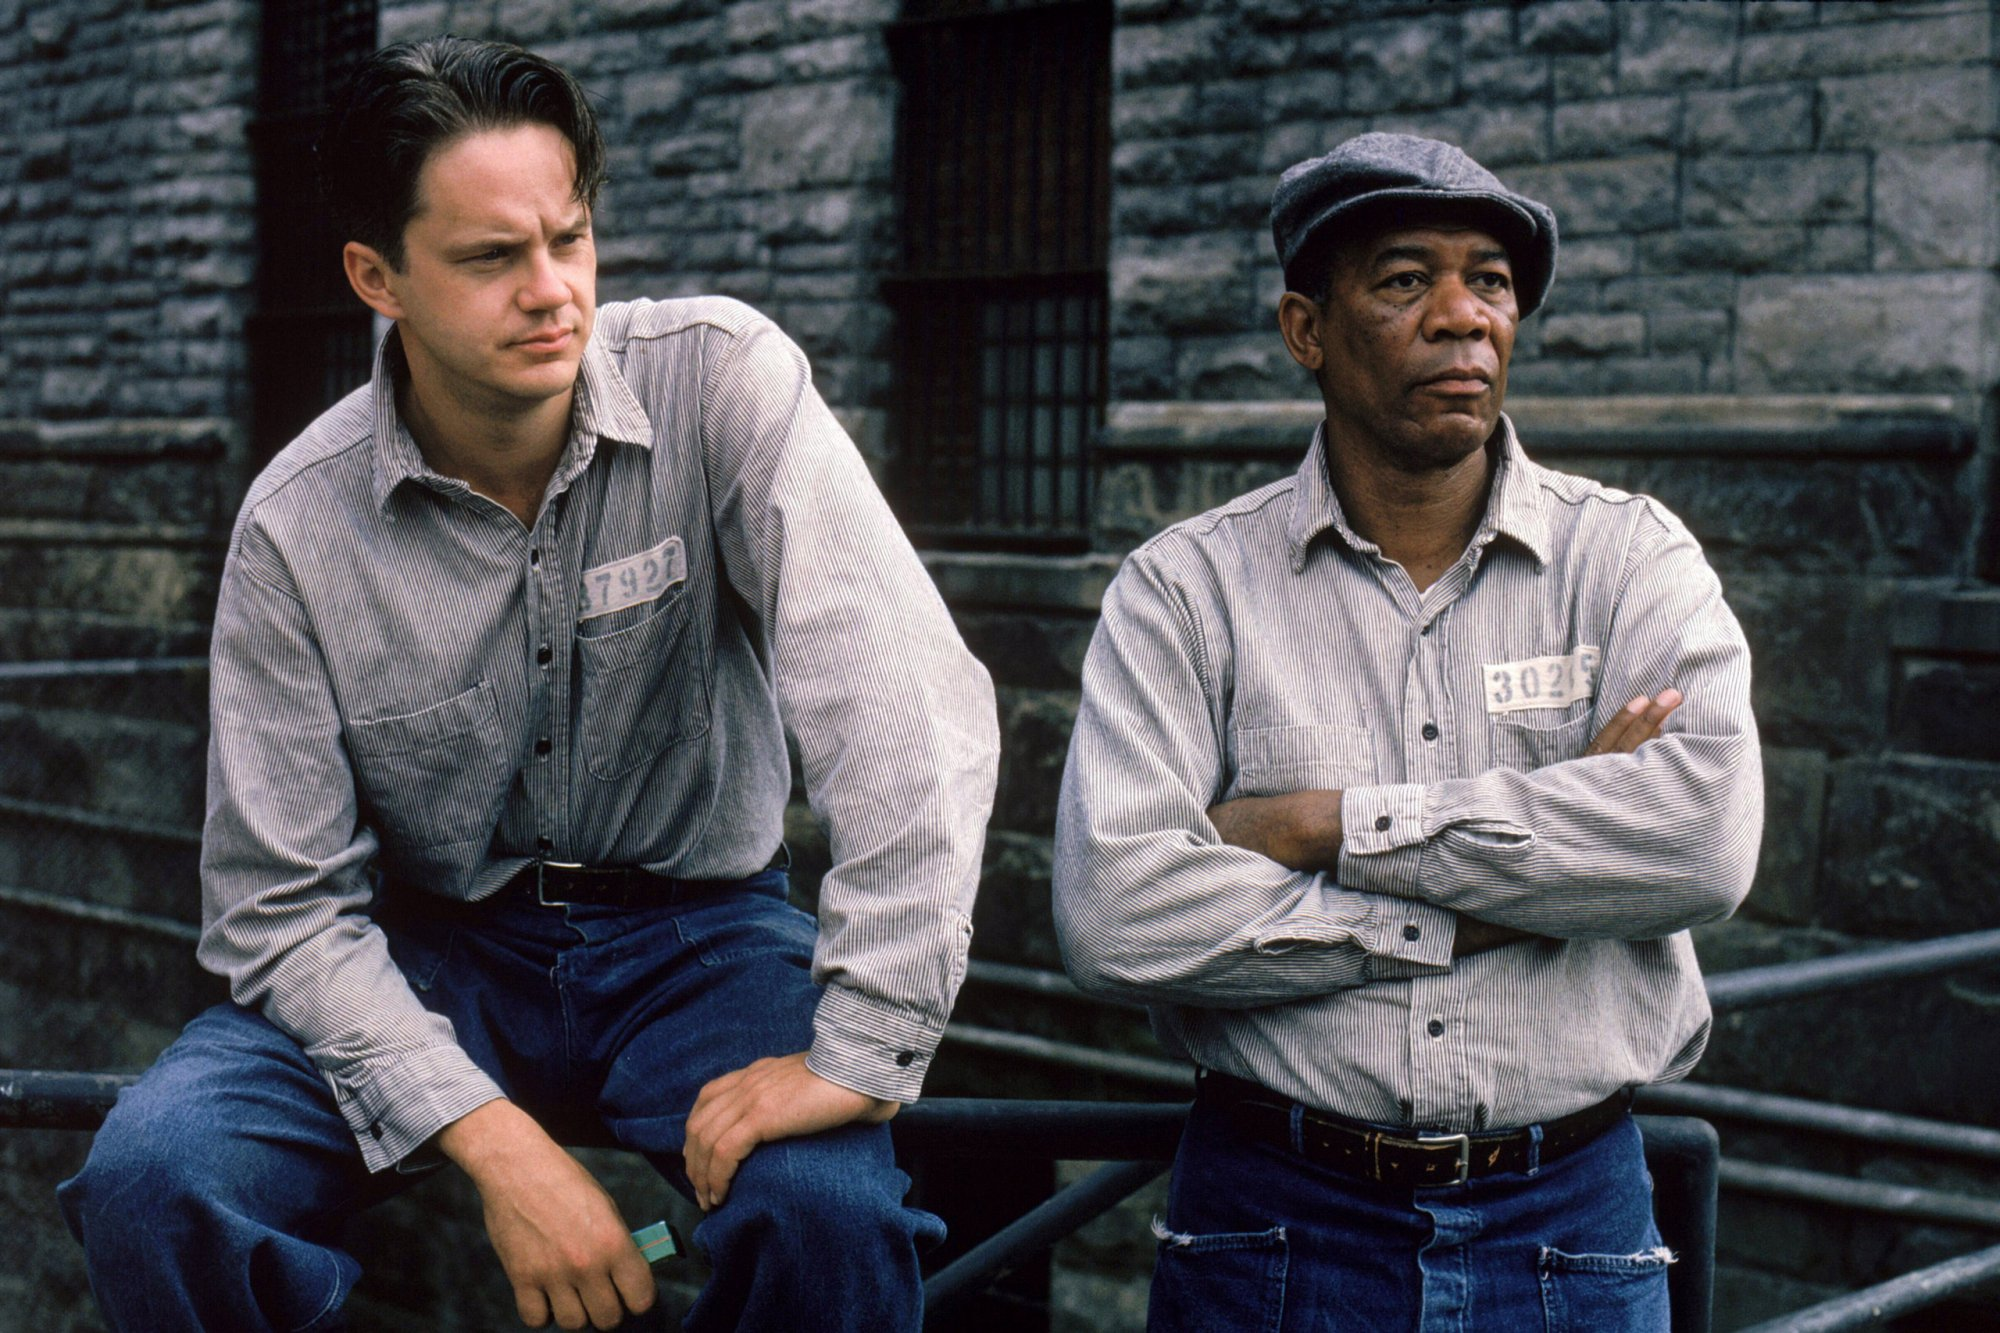 20 Things You Didn't Know About 'The Shawshank Redemption' - The Daily Beast